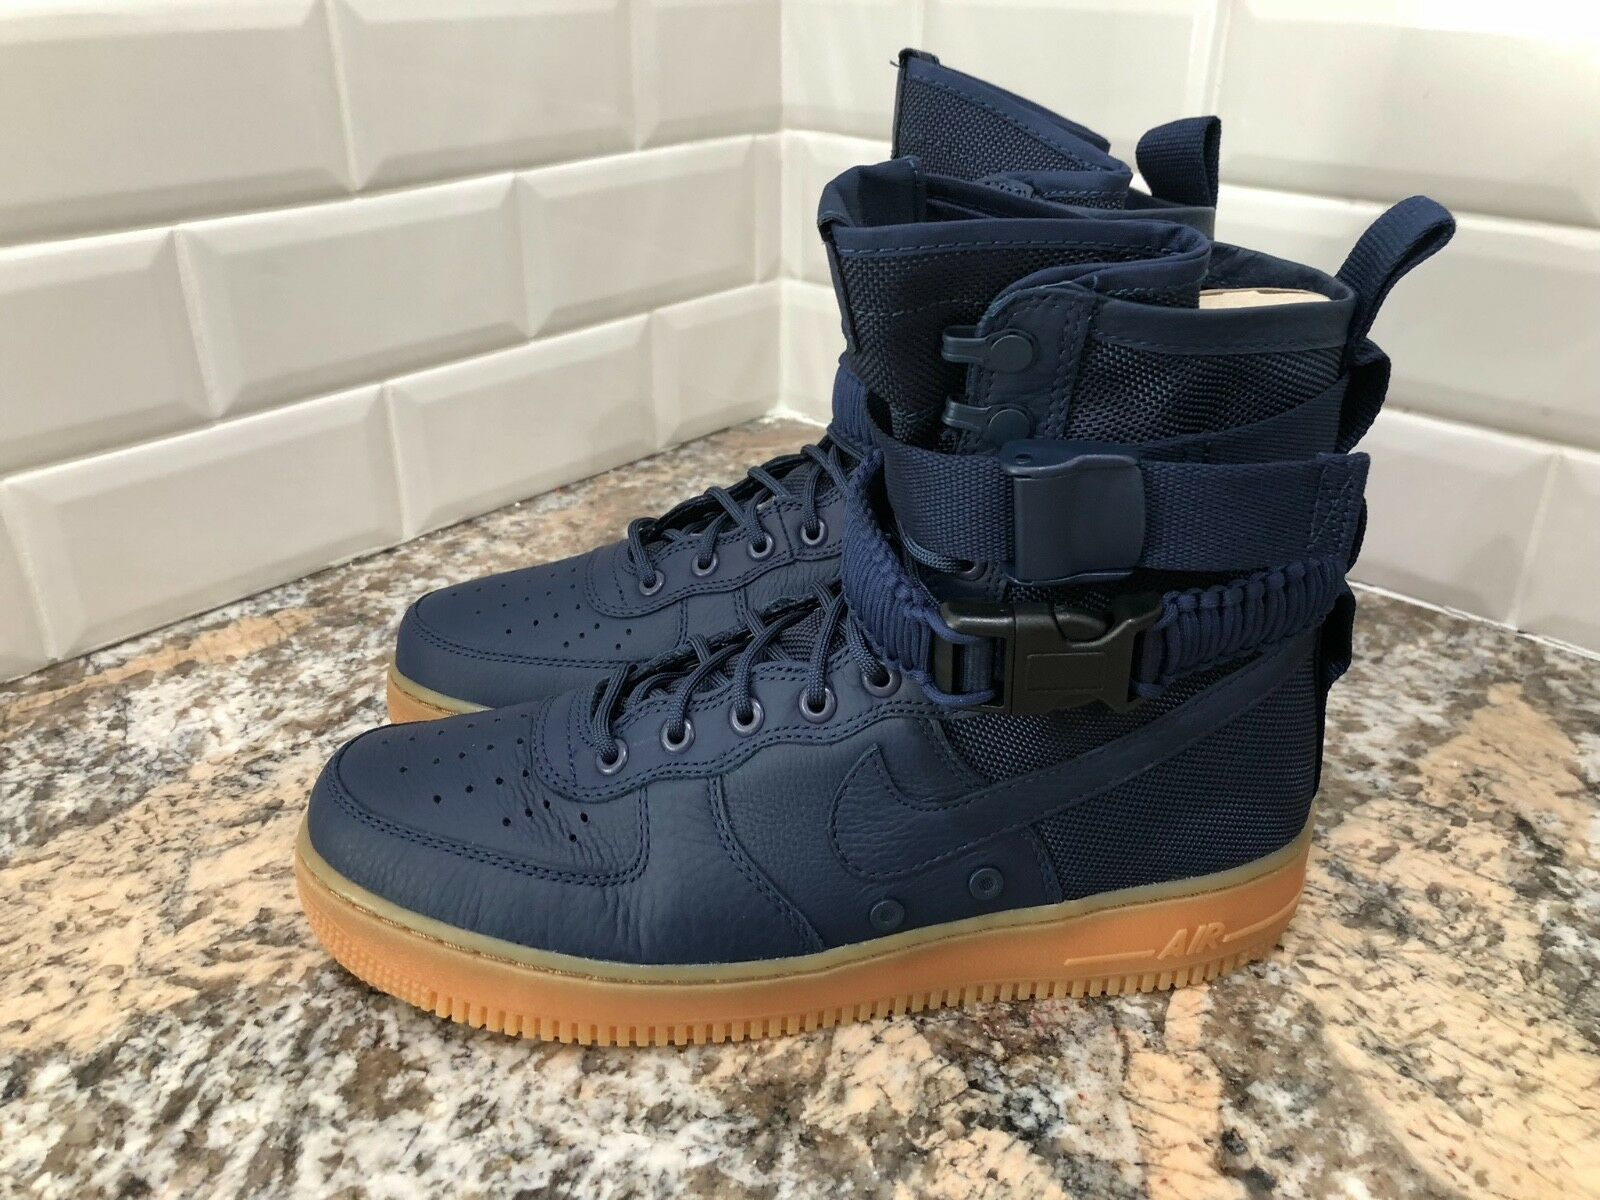 Nike SF AF1  Air Force 1 Special Field Midnight Navy Blue High Price reduction The most popular shoes for men and women